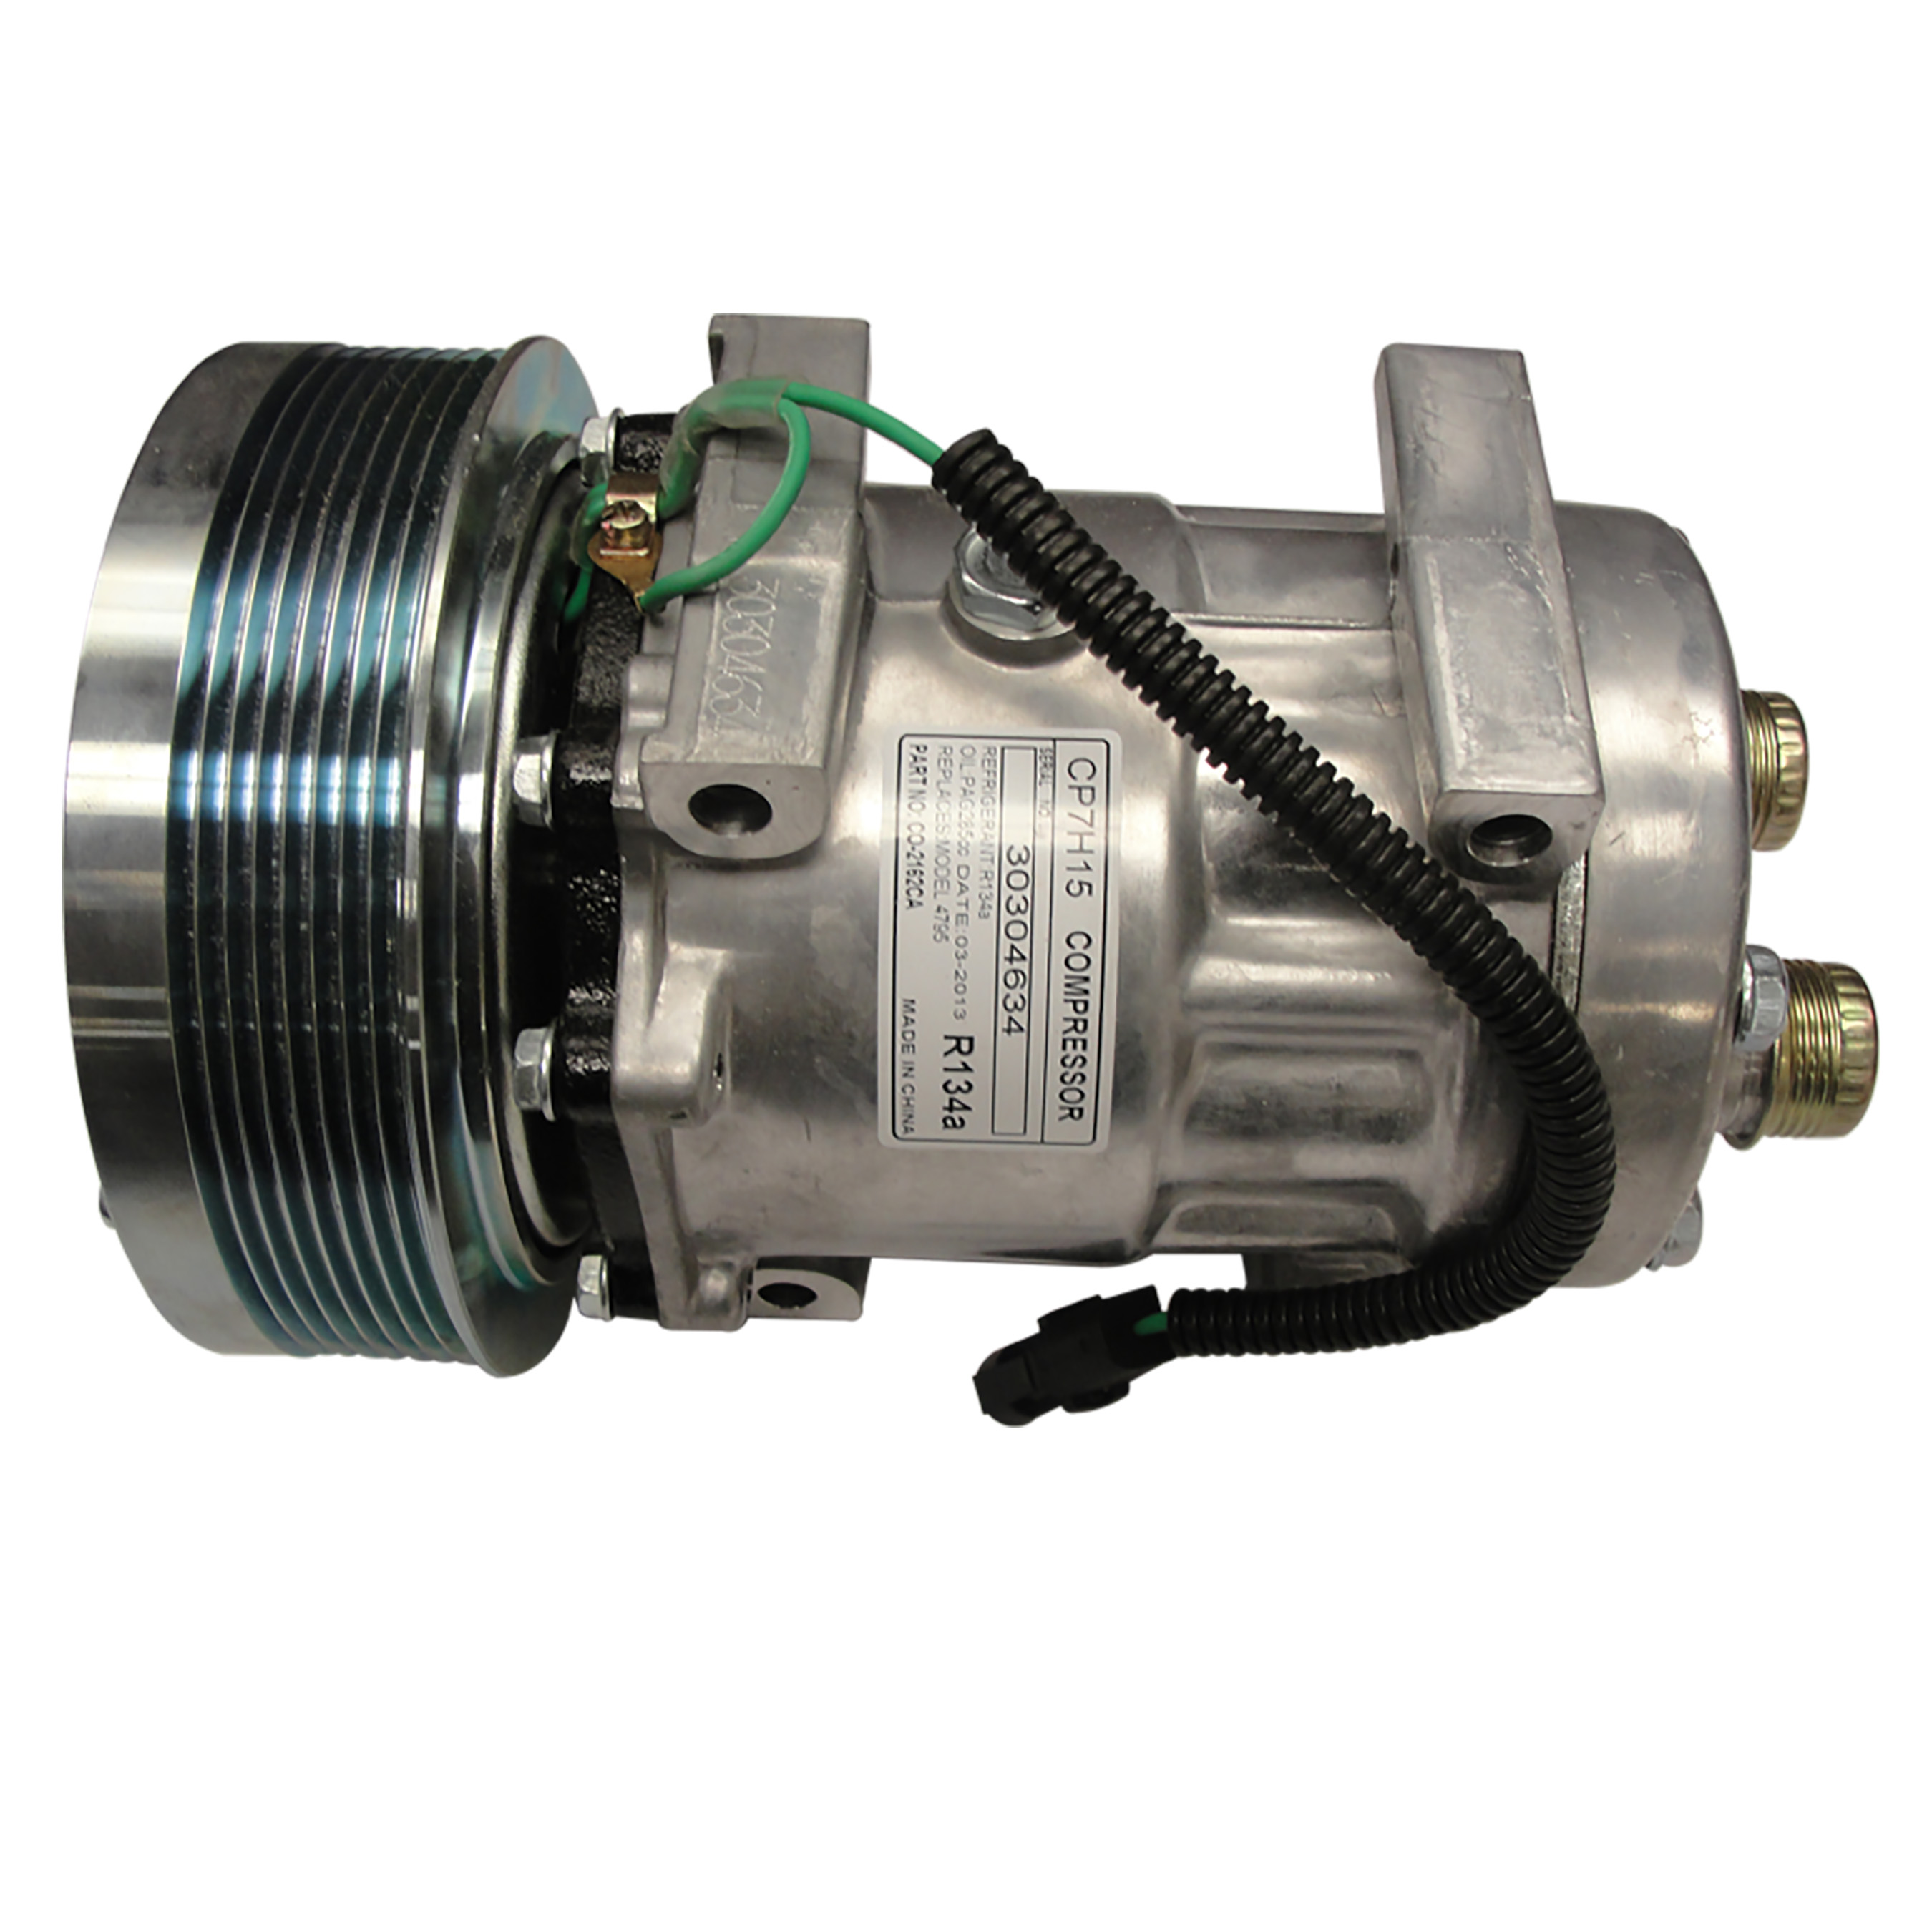 International Harvester Compressor Diameter: 6